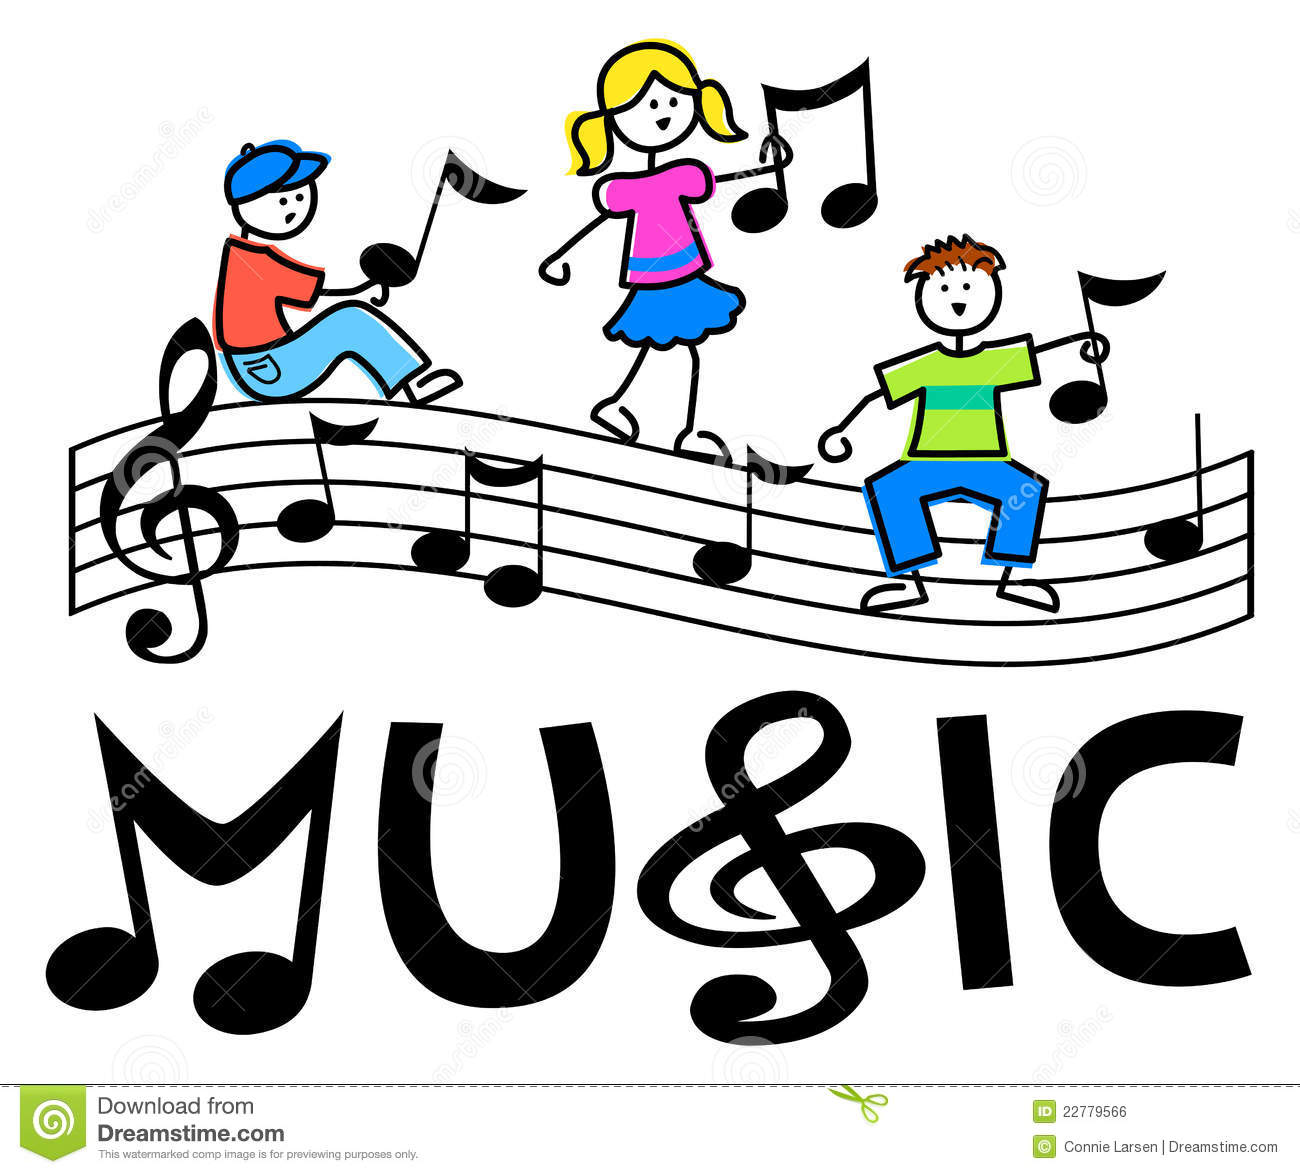 free clipart music notes at getdrawings com free for personal use rh getdrawings com clipart royalty free public domain clip art royalty free for commercial use